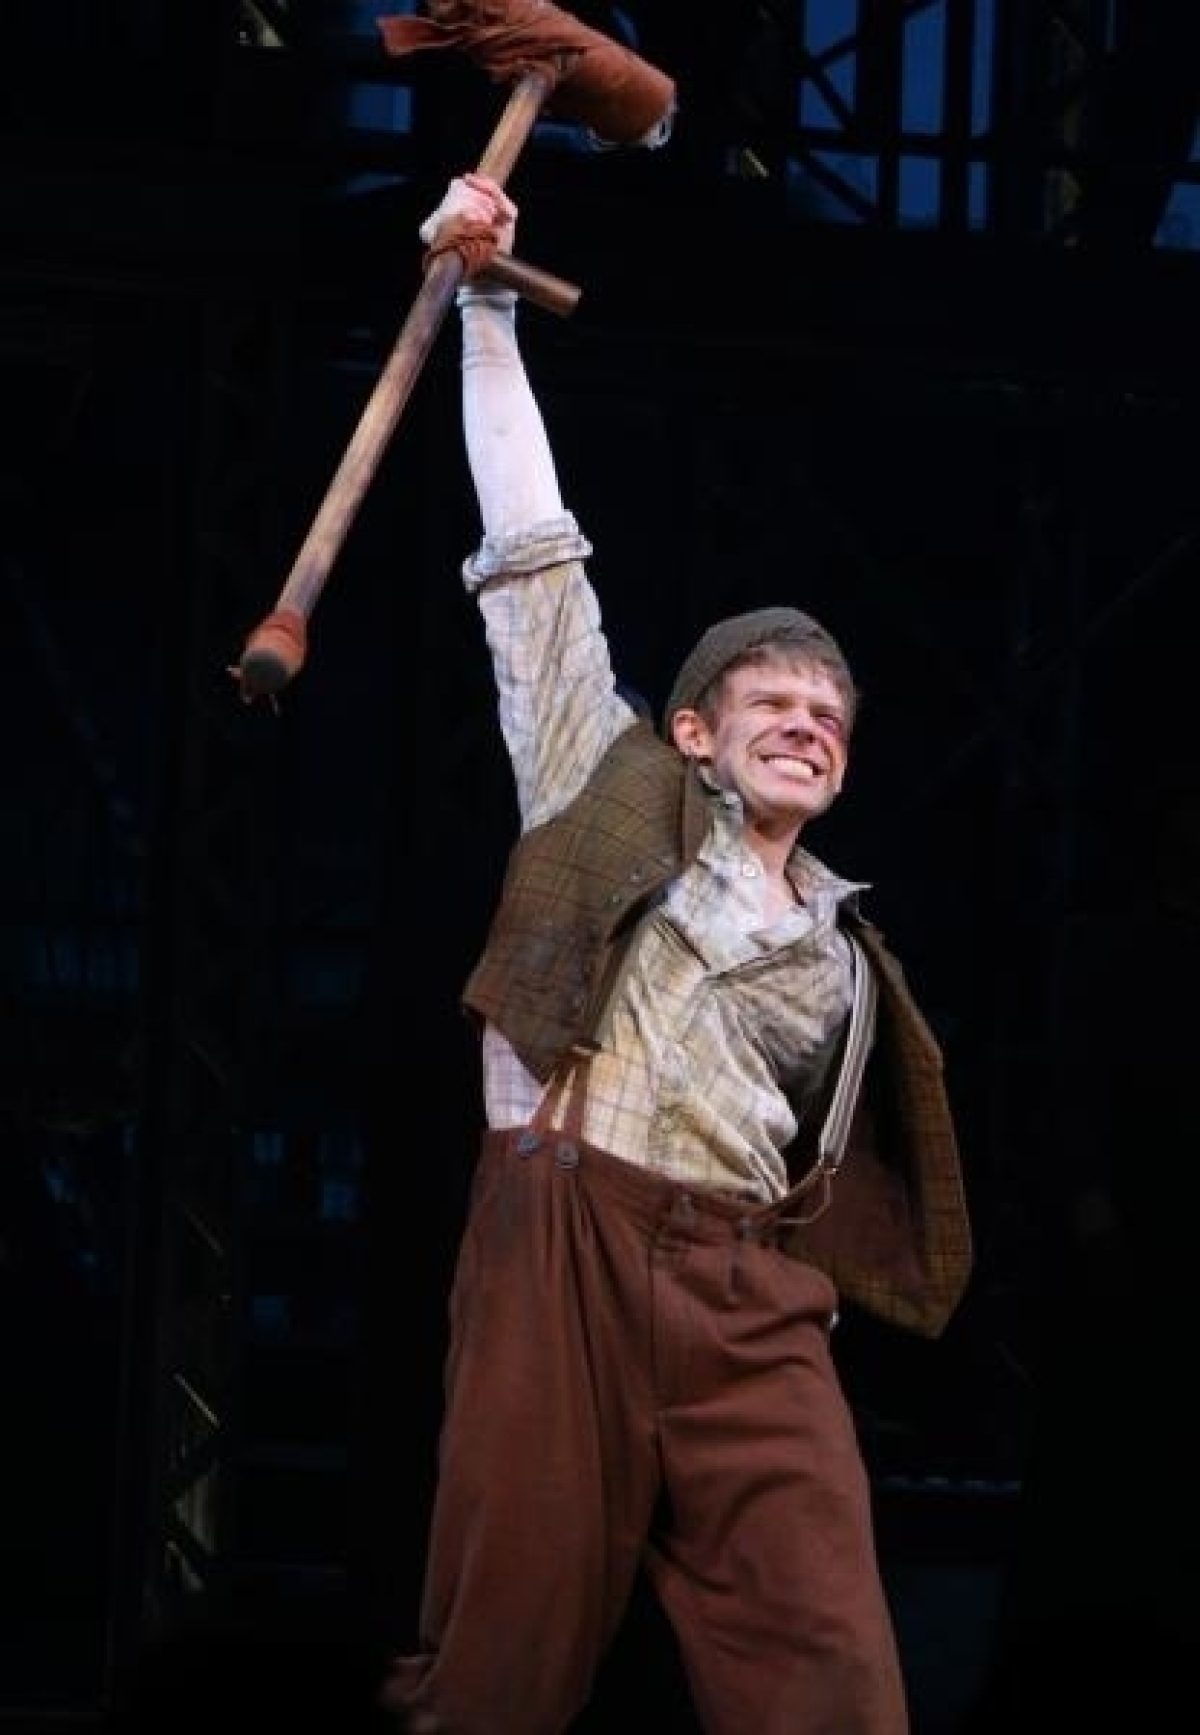 Andrew Keenan Bolger Premieres New Song For Crutchie From